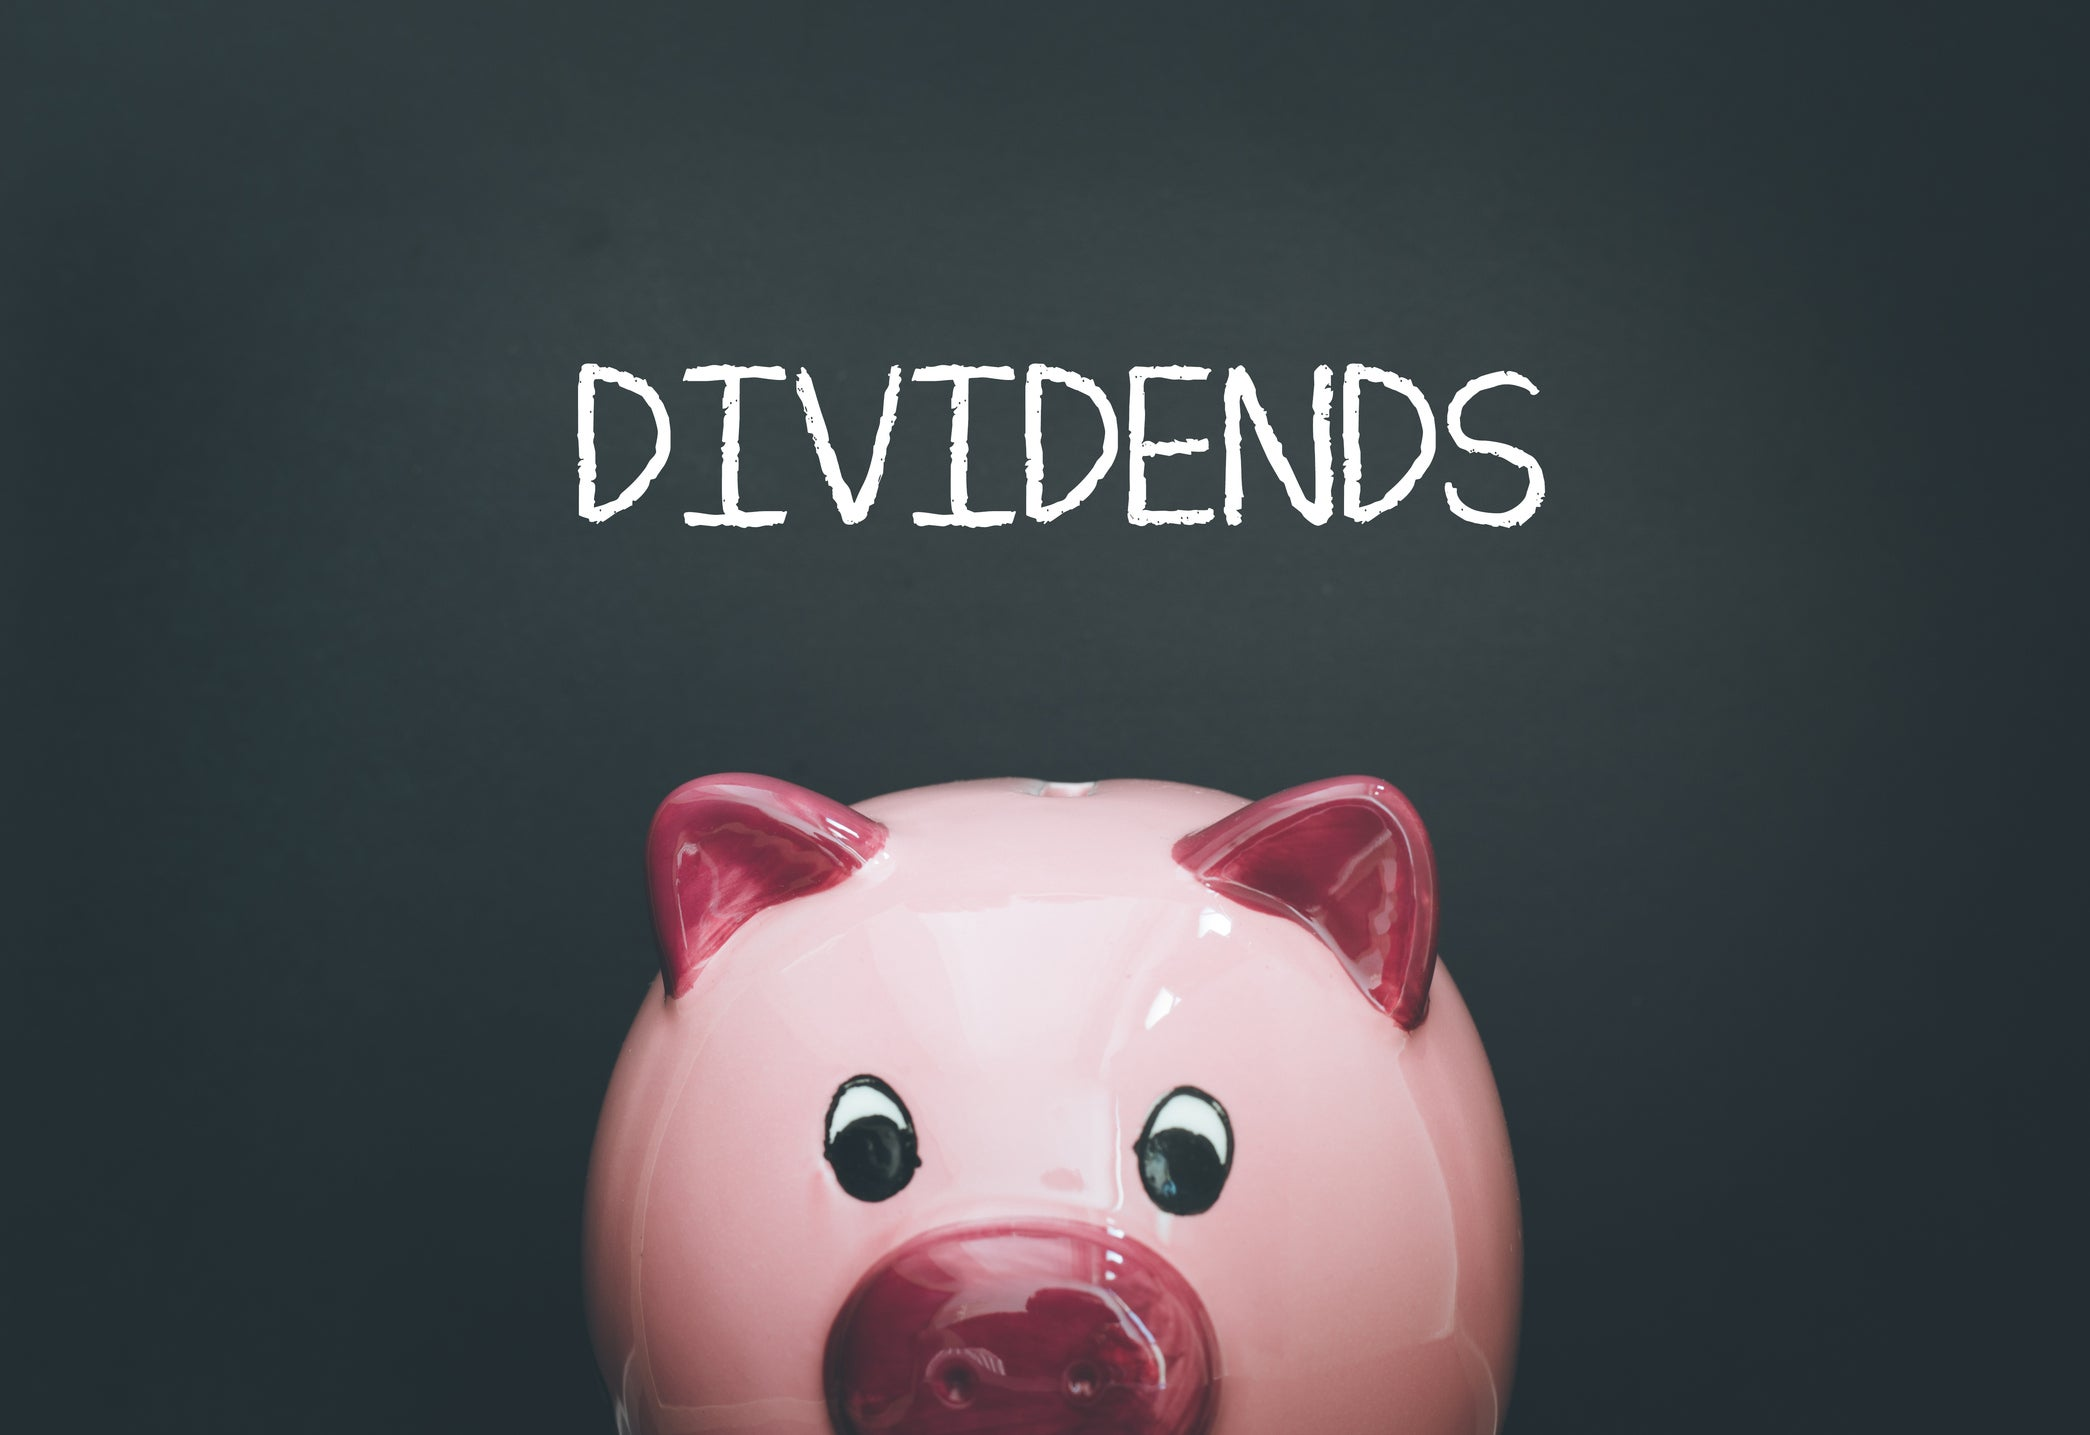 5 Top Dividend Payers of the S&P 500